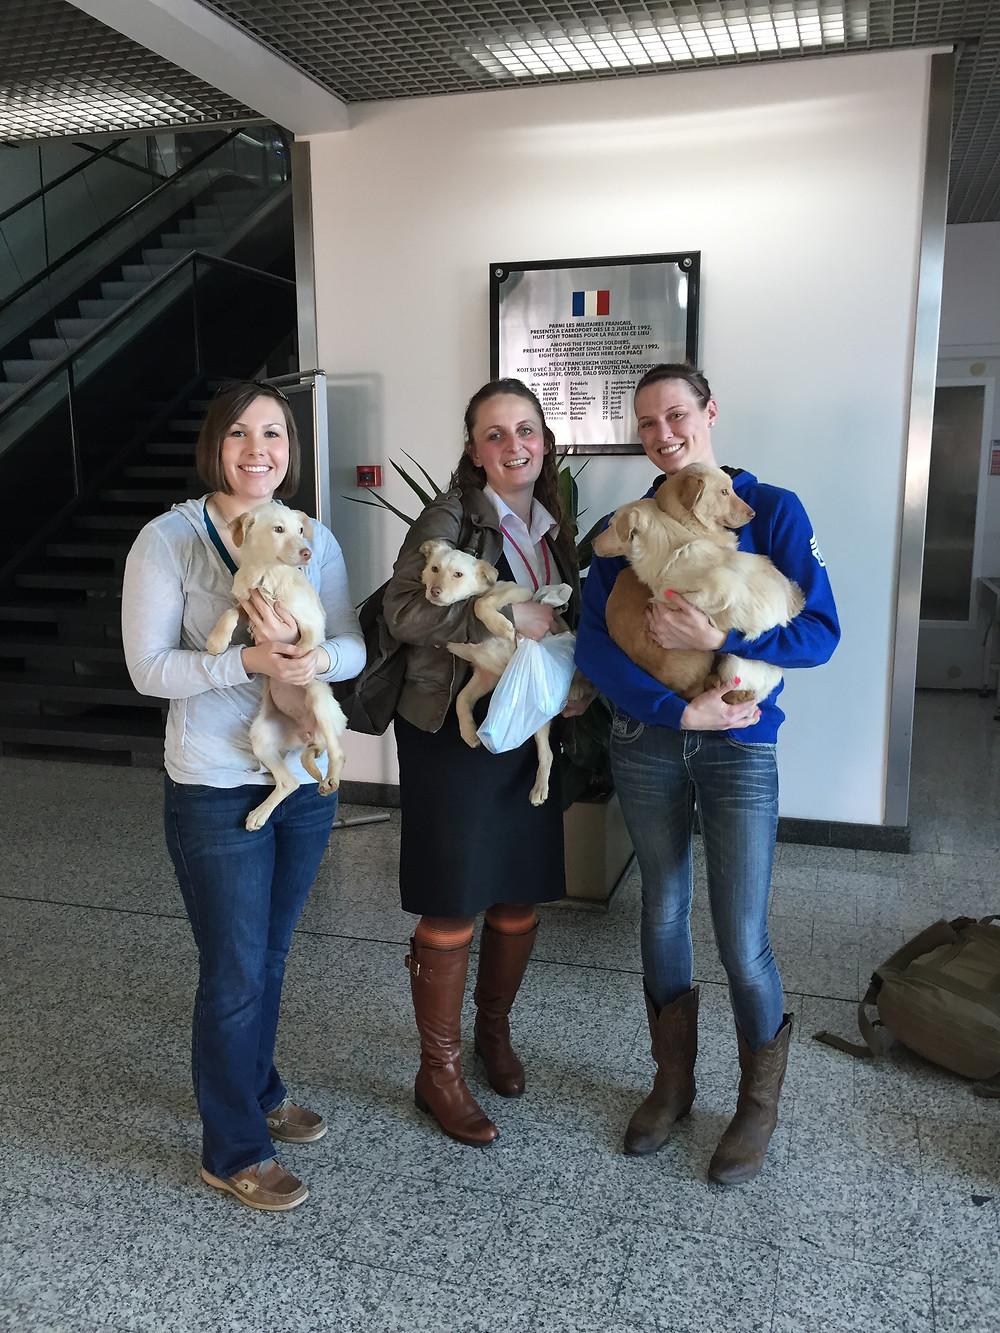 Simba, Sienna, Pippa, & Freya leaving Sarajevo thanks to Puppy Rescue Mission